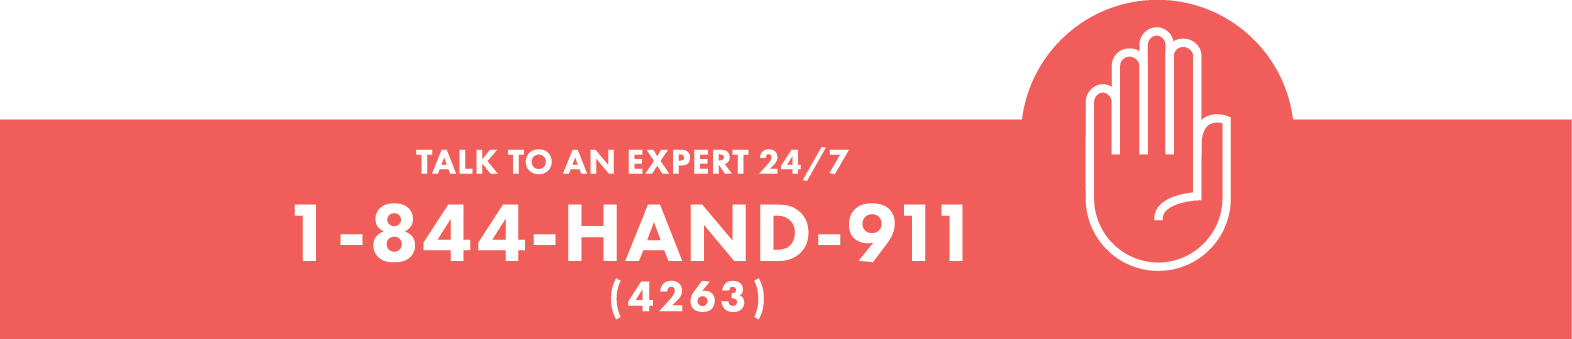 Talk To an Expert 24/7. 1-844-HAND-911